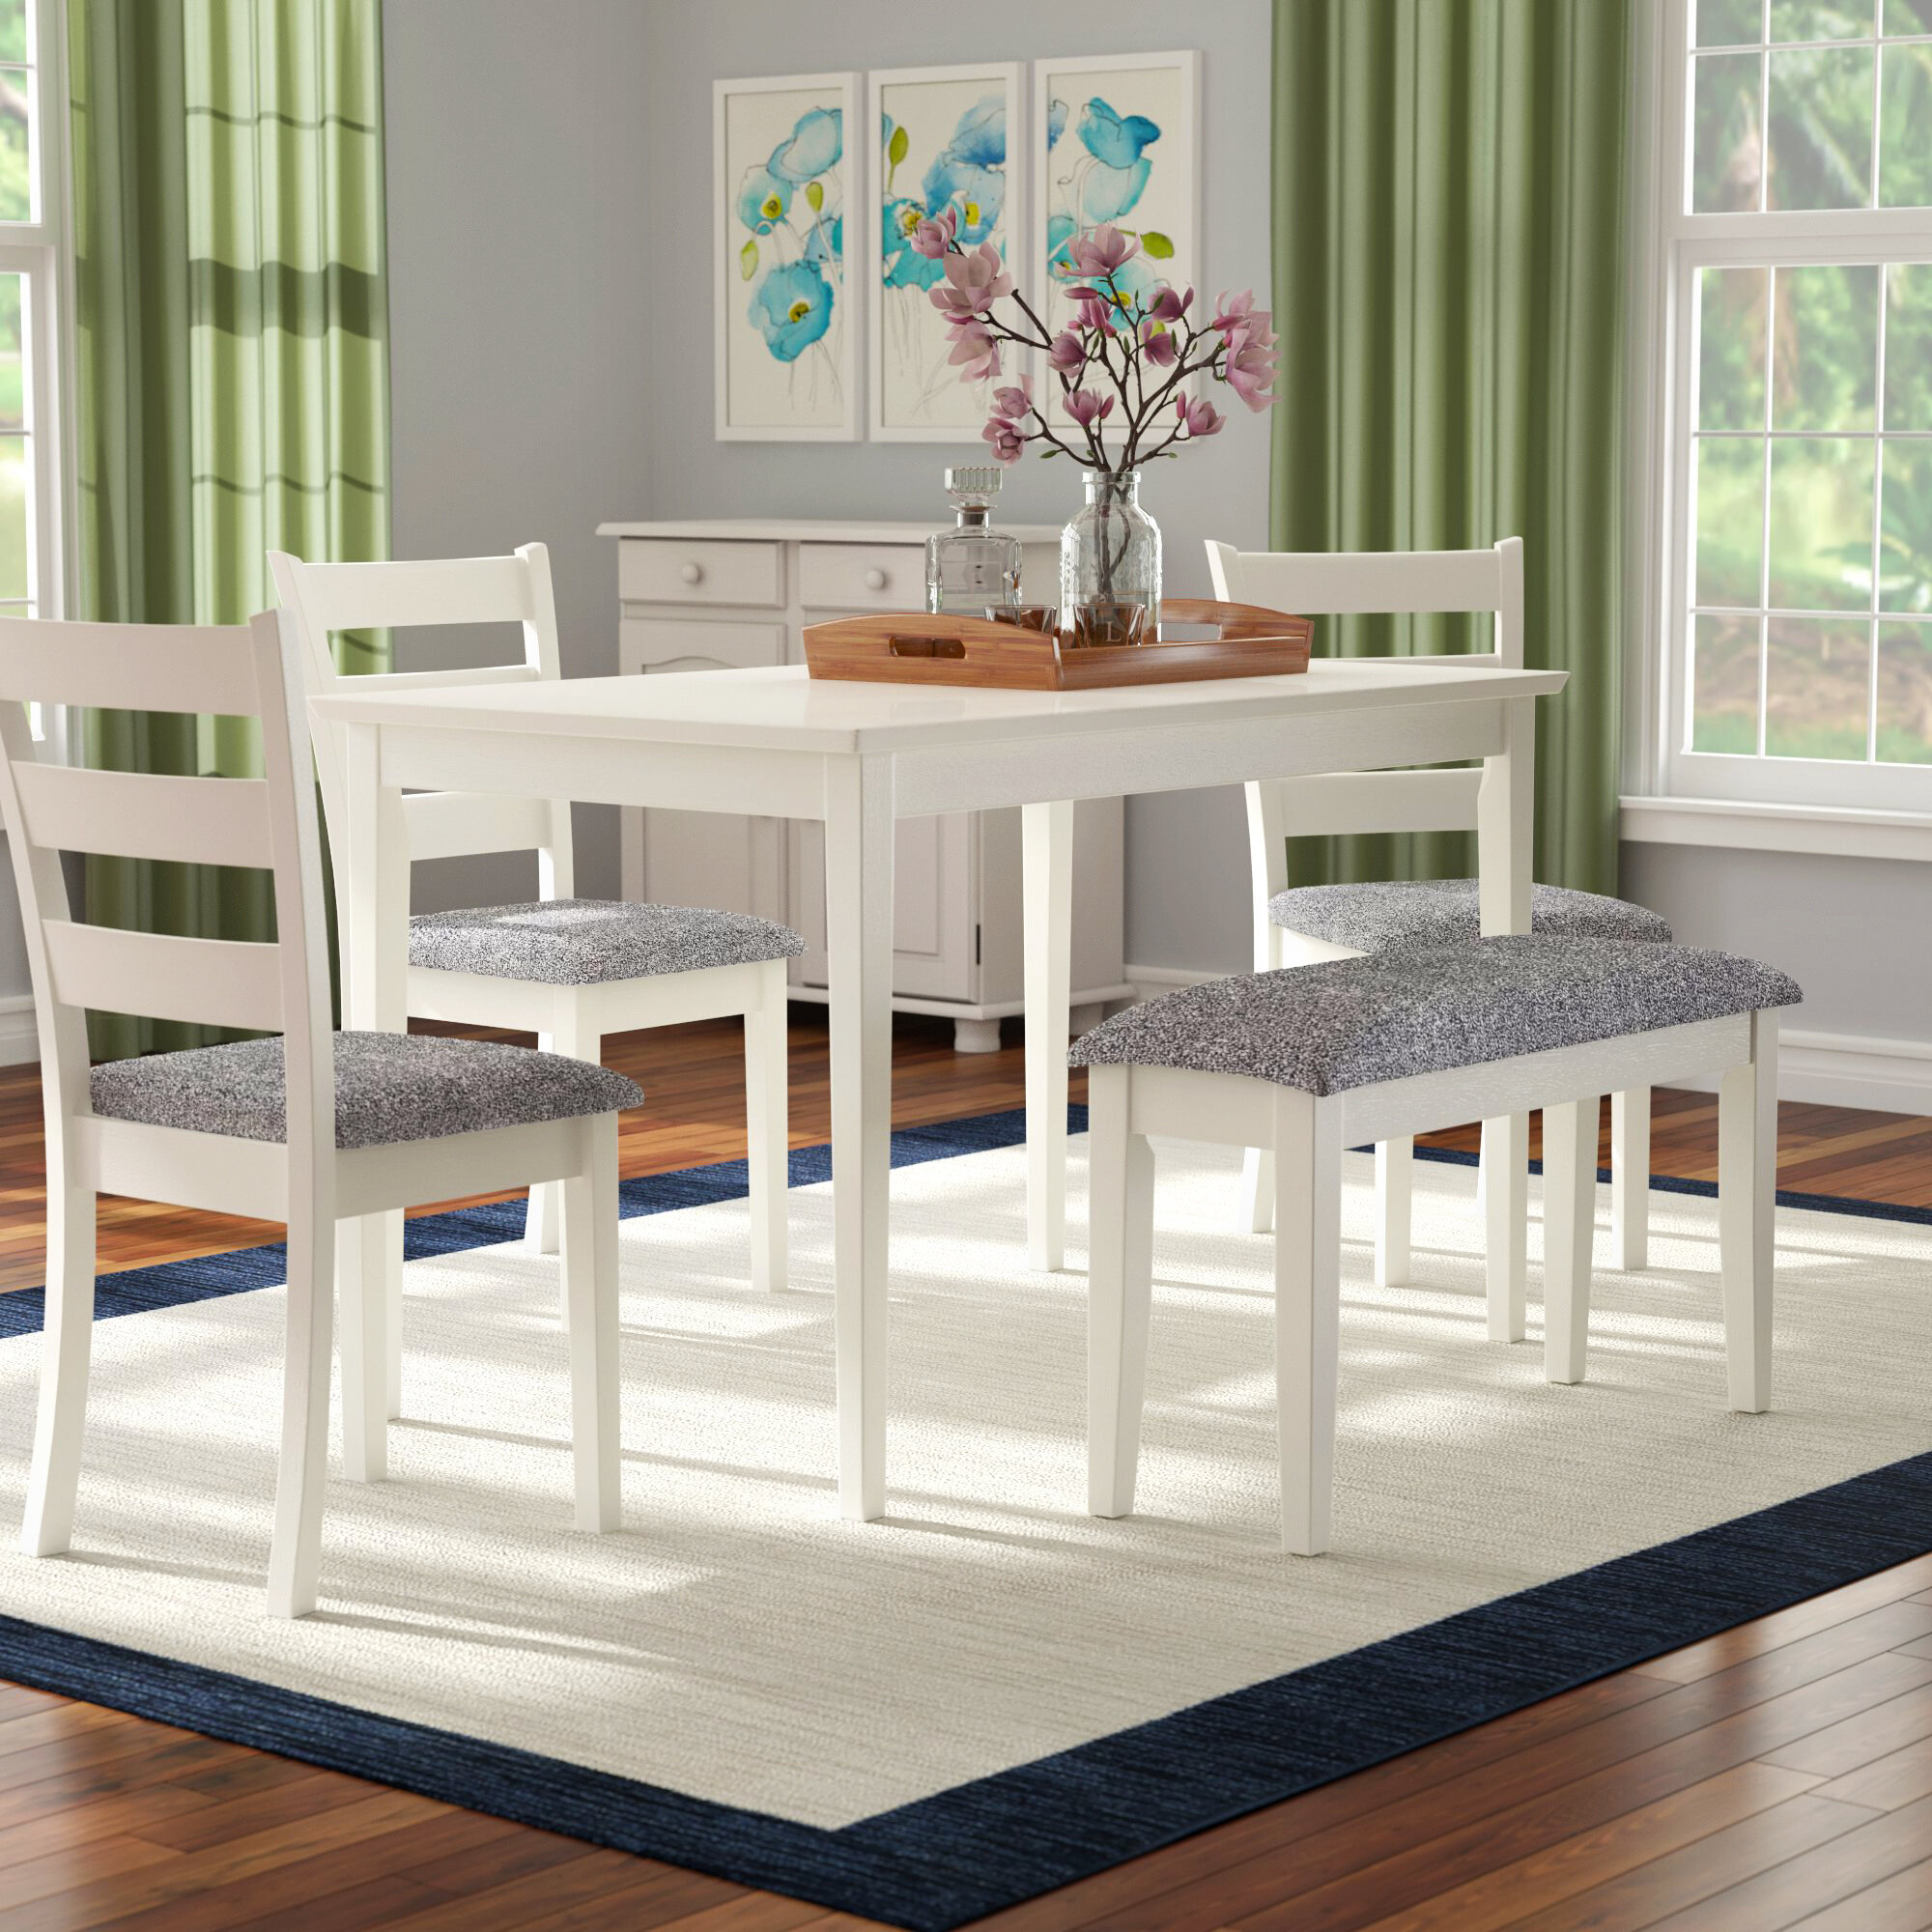 Emmie 5 Piece Dining Set Pertaining To Latest Kaya 3 Piece Dining Sets (Photo 5 of 20)